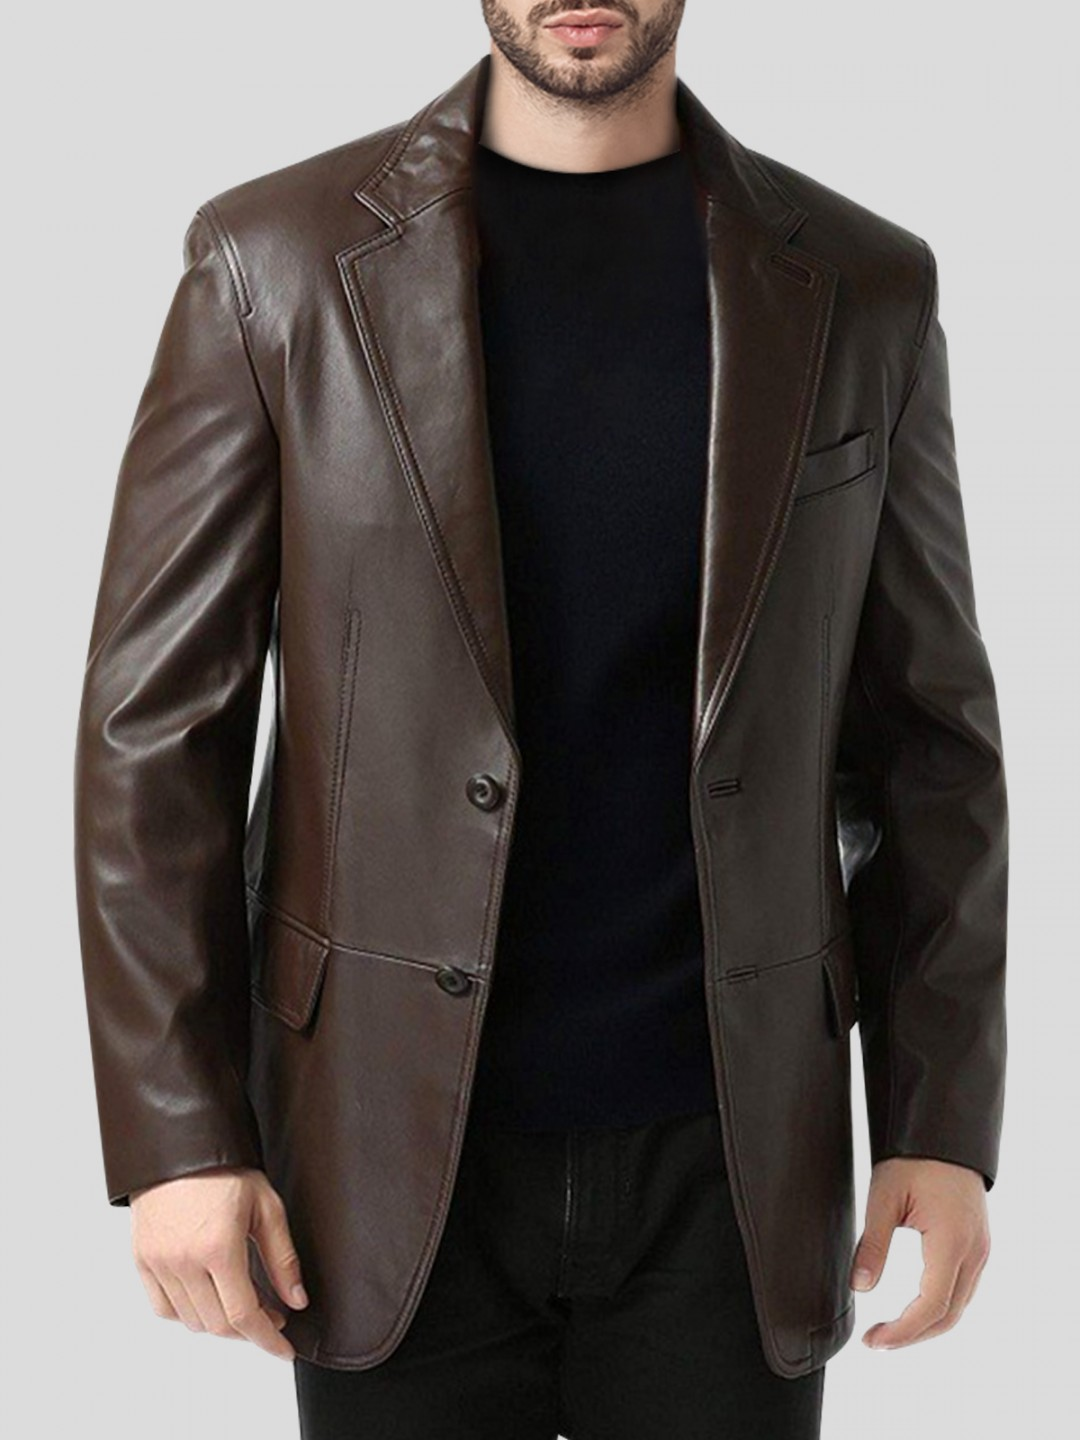 Mens Single Breasted Brown Leather Blazer Coat - Samish Leather